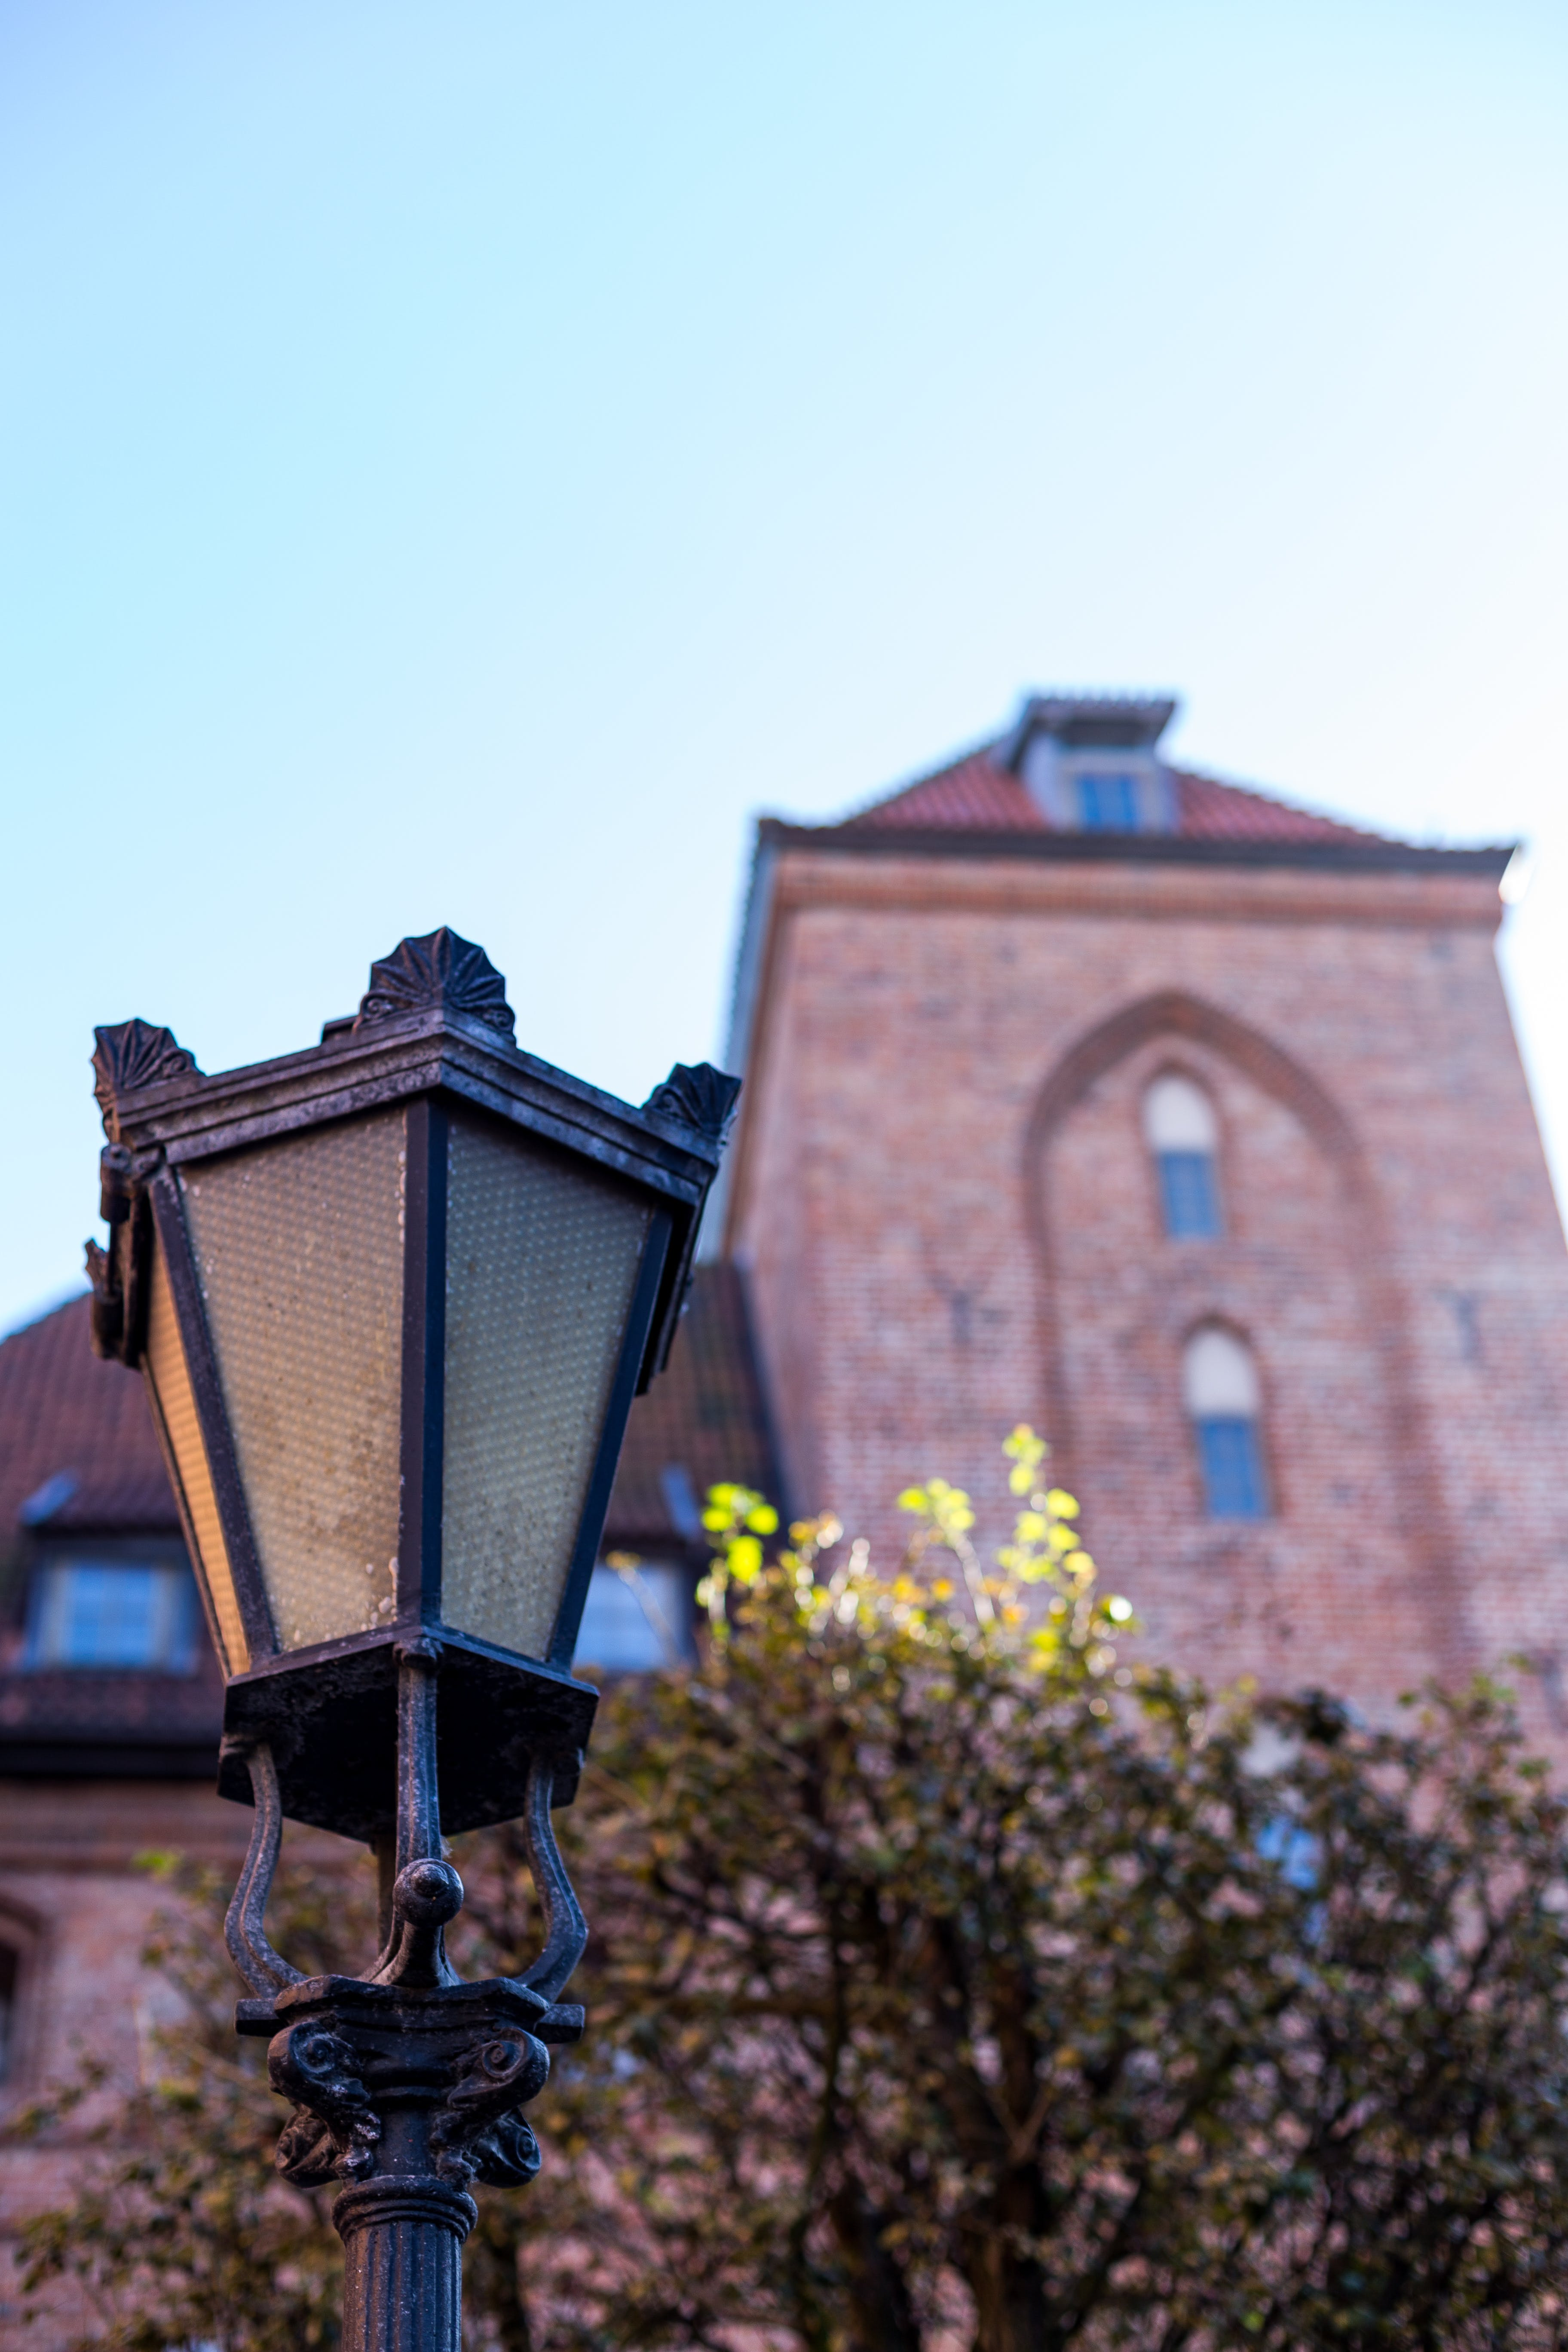 Free stock photo of light, architecture, old, lantern